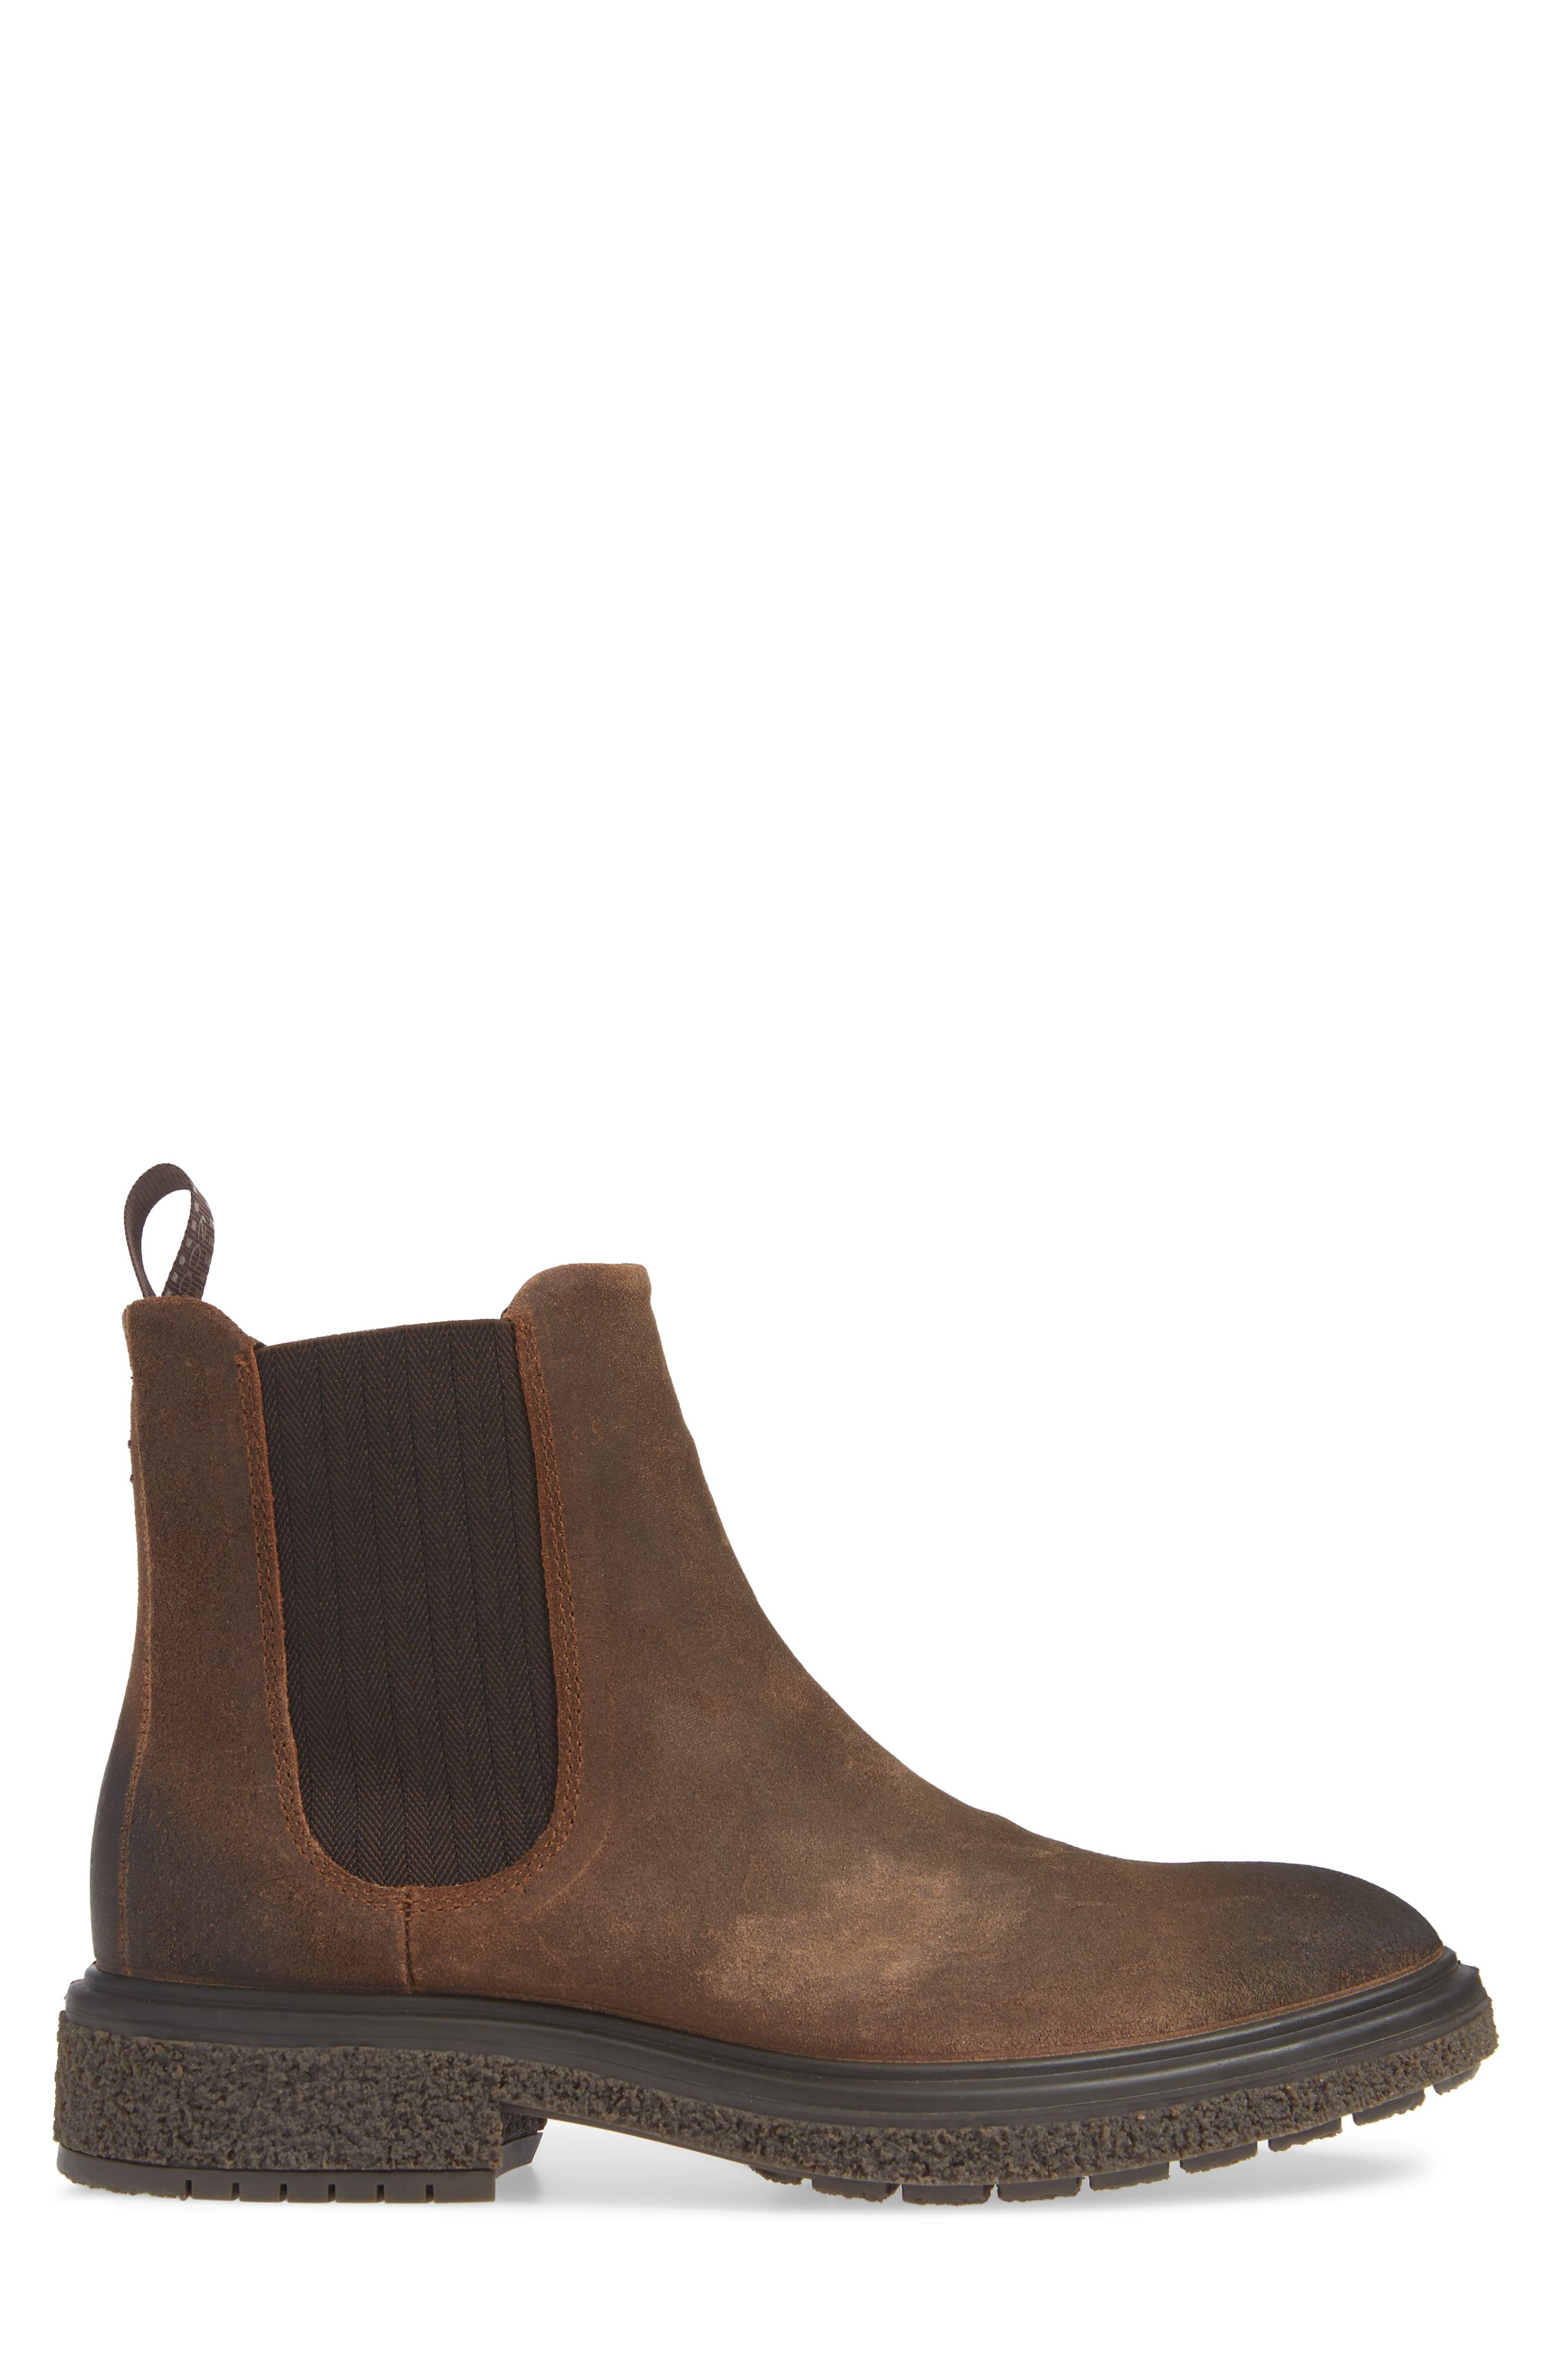 Crepetray Chelsea Boot,                             Alternate thumbnail 3, color,                             201